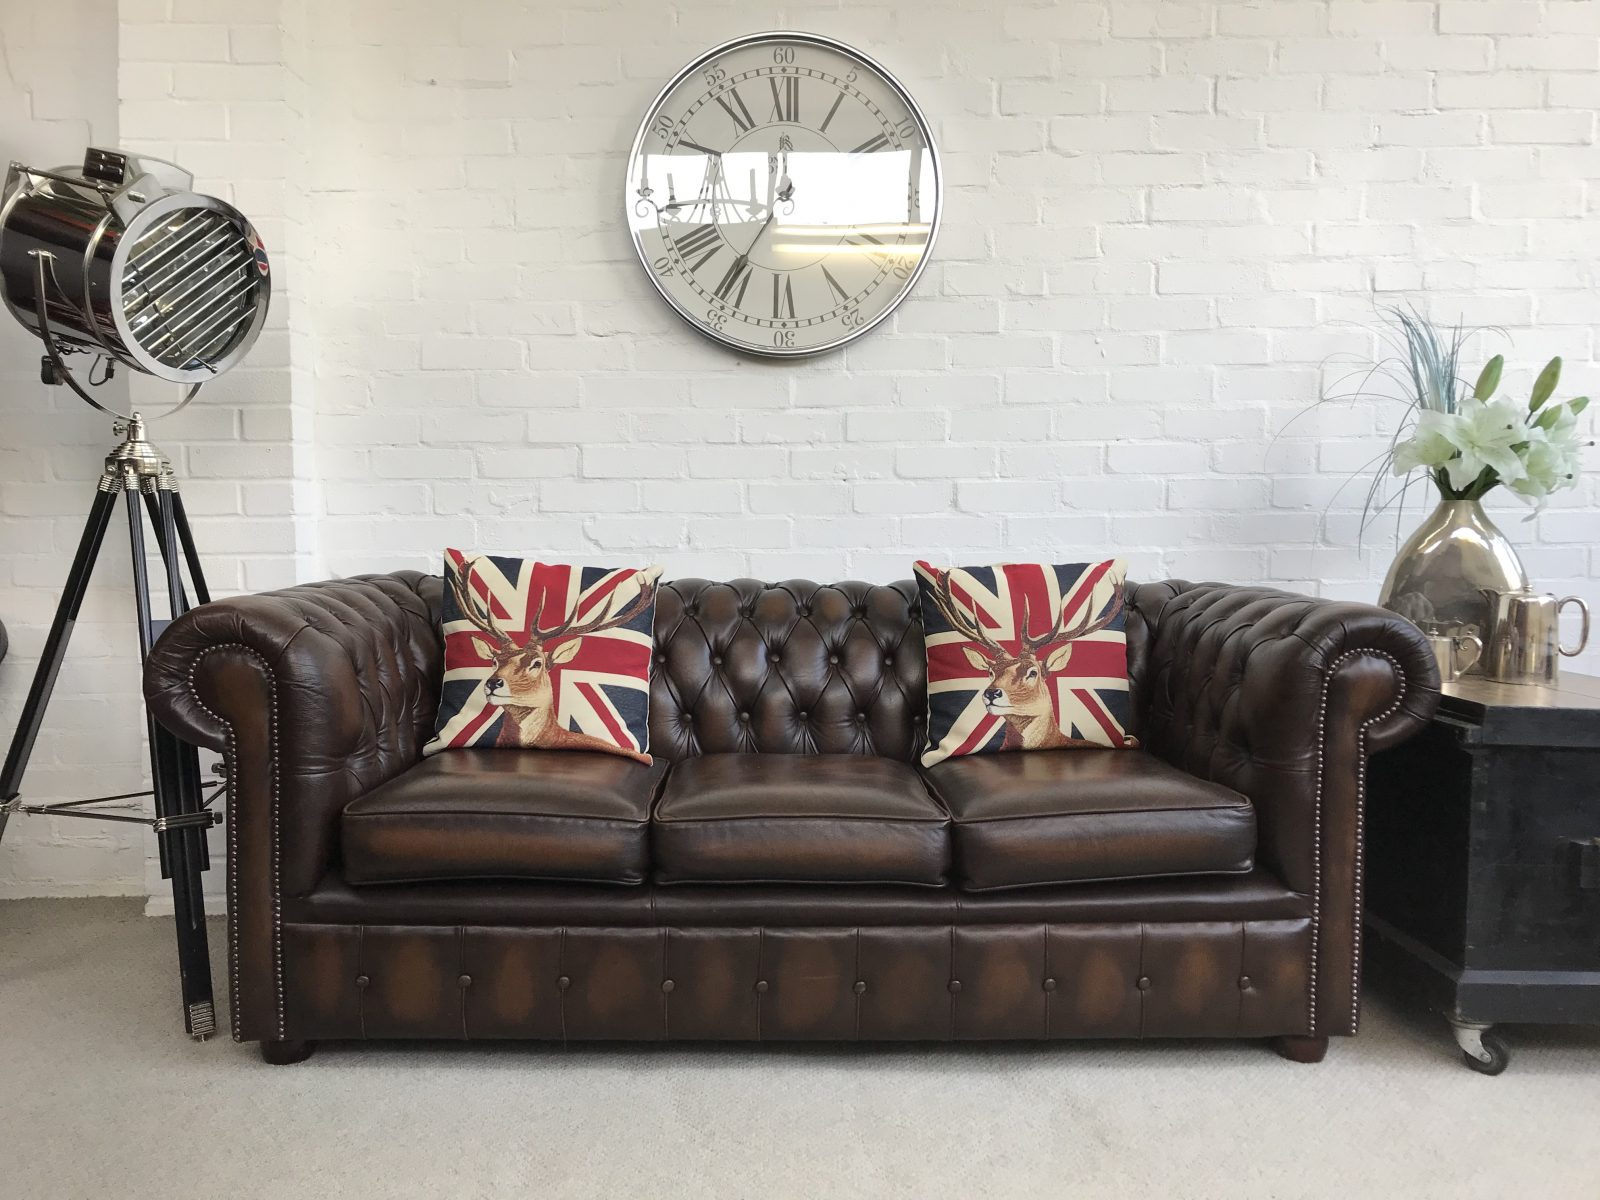 Antique Brown Chesterfield Sofa…..SOLD.